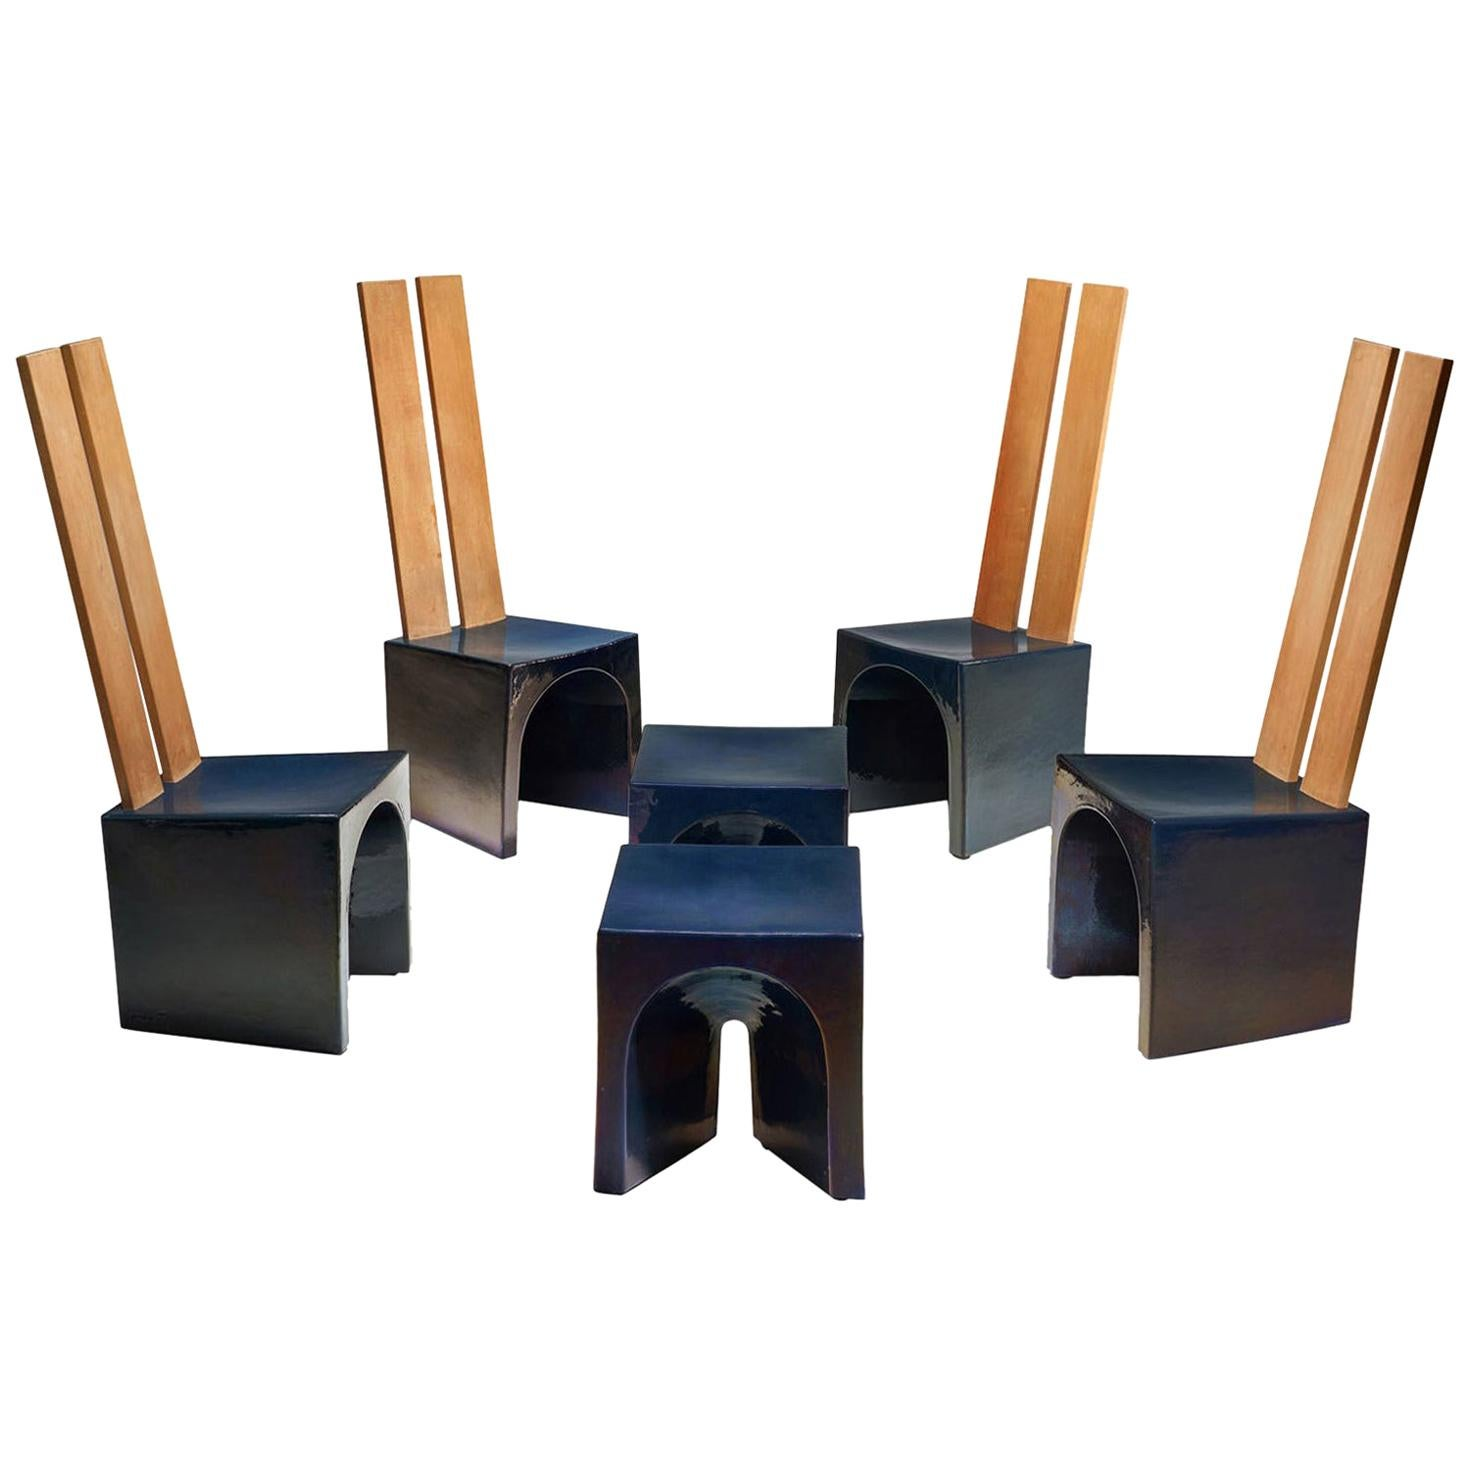 Tom Bruinsma Glazed Chairs and Tables for Mobach Ceramics, the Netherlands